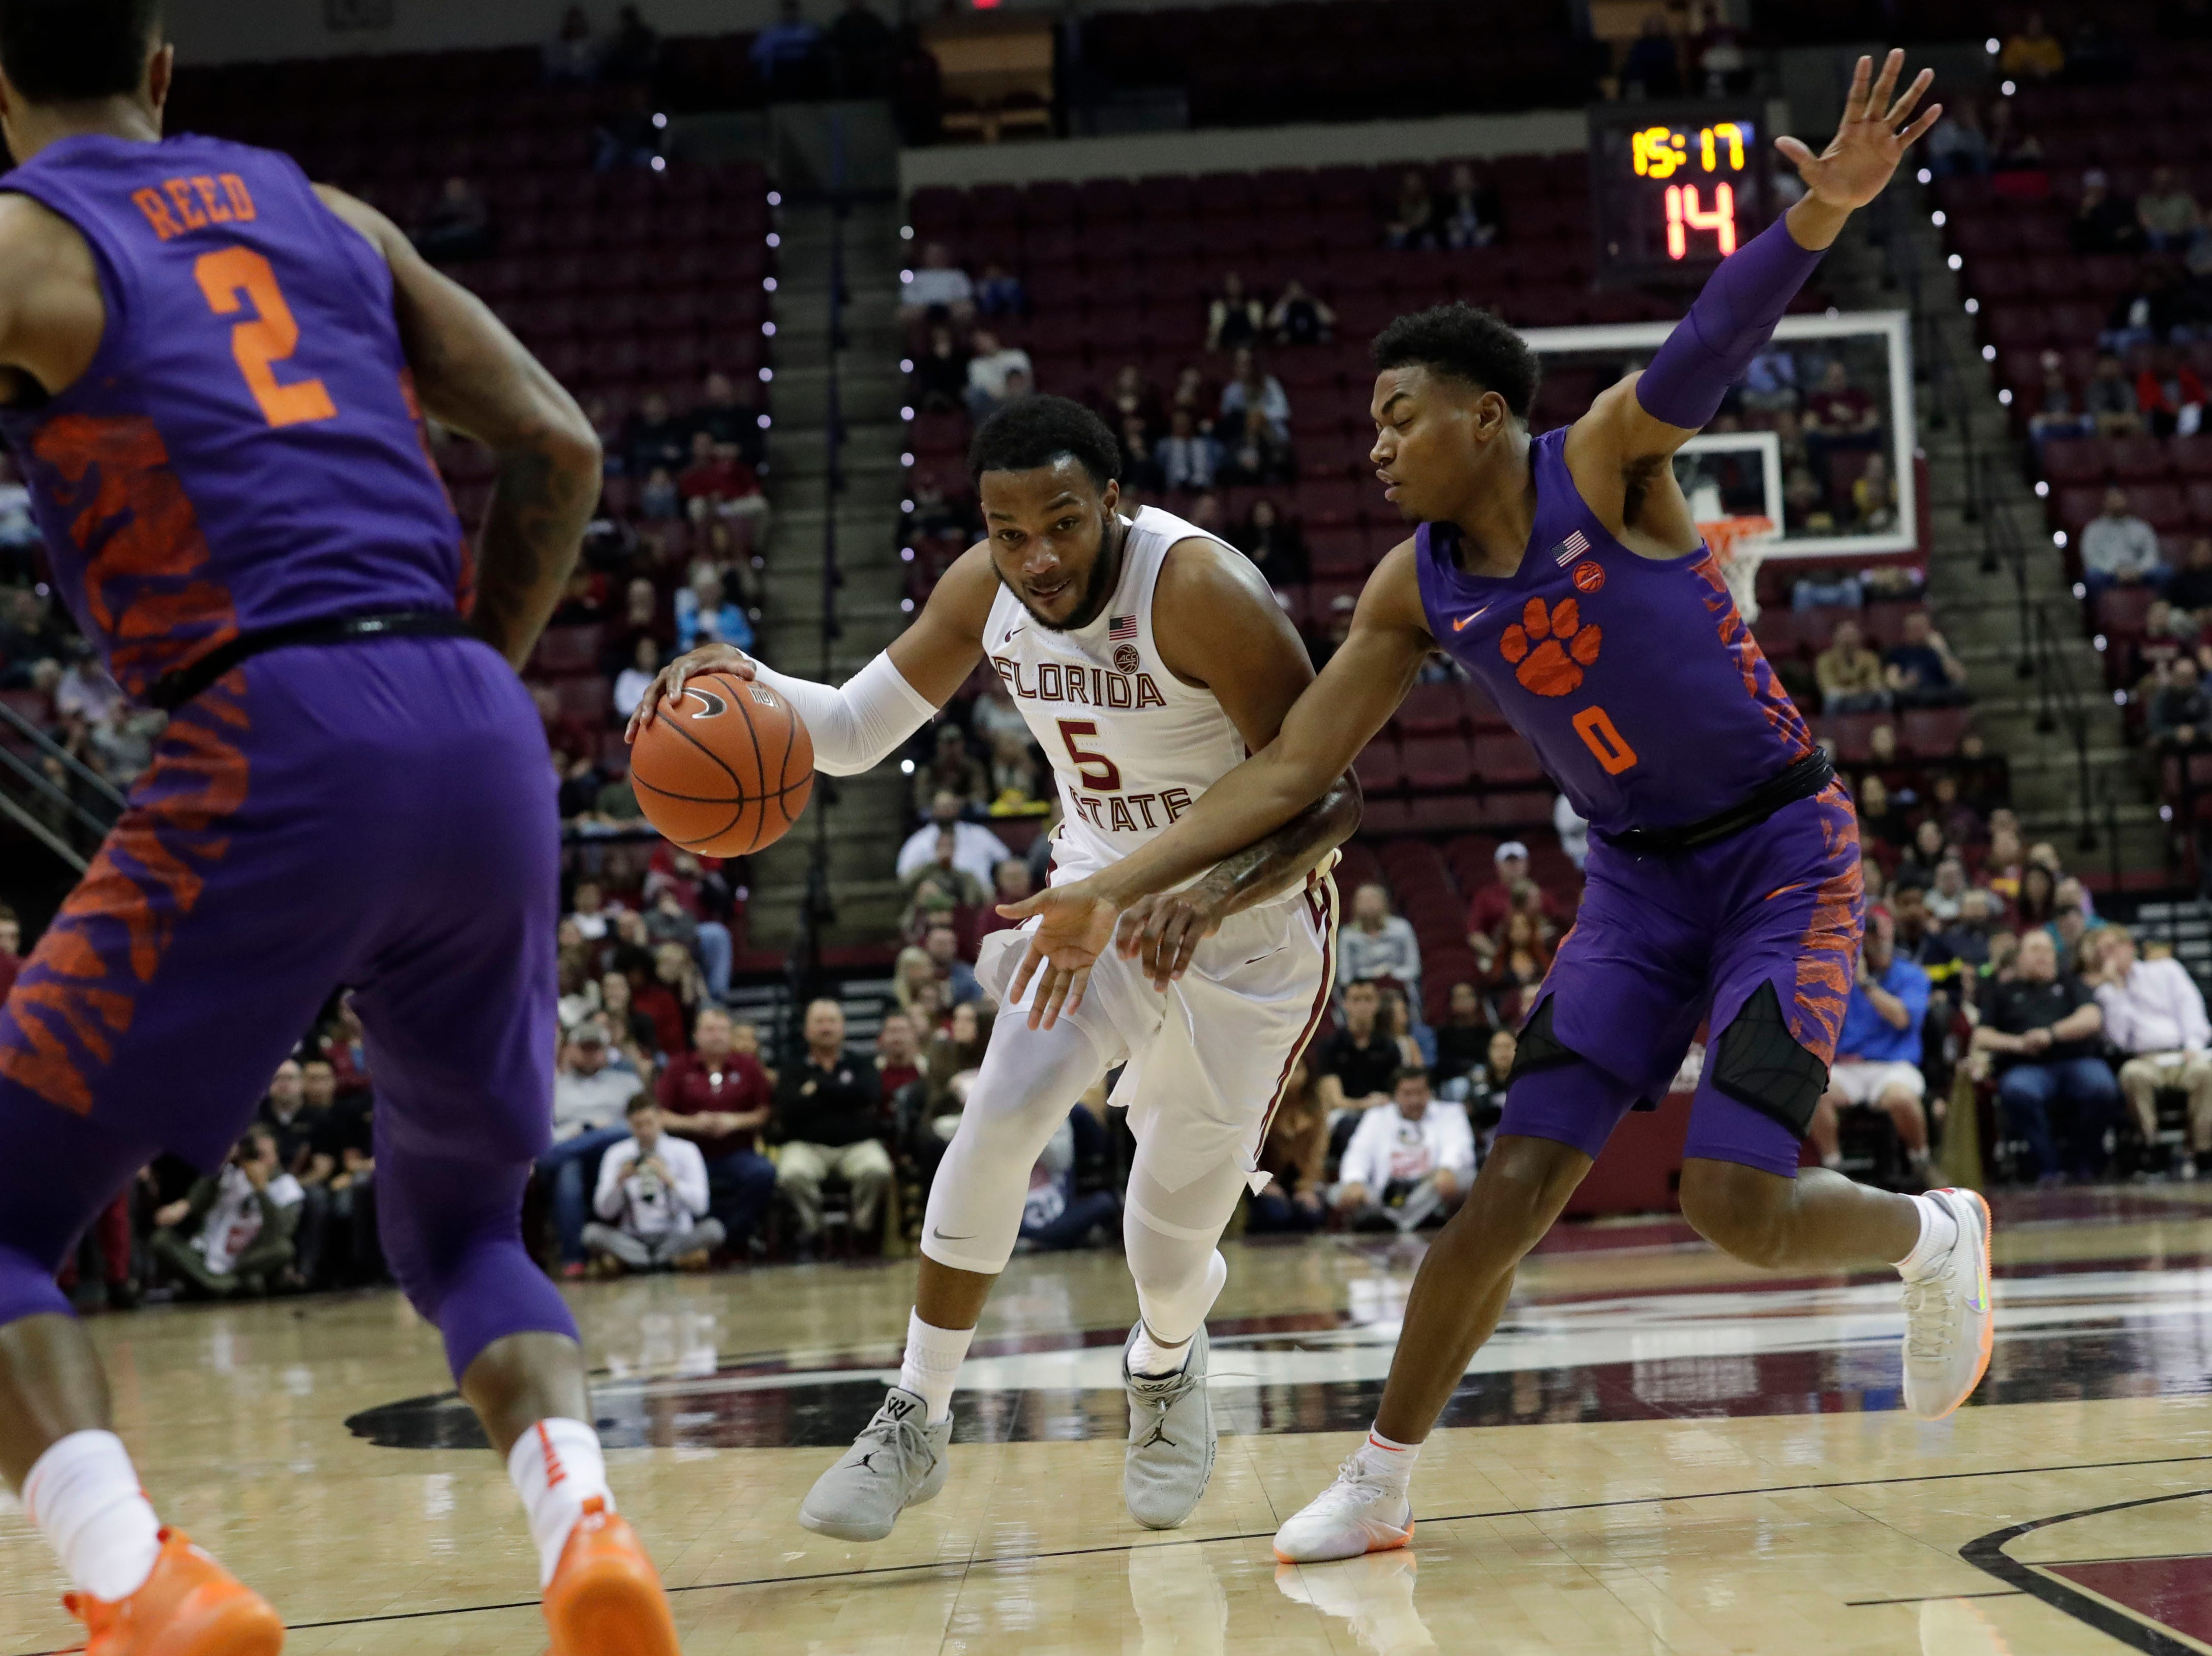 Florida State Seminoles guard PJ Savoy (5) drives the ball to the hoop while making his way around Clemson Tigers guard Clyde Trapp (0). The Florida State Seminoles face off against the Clemson Tigers at the Tucker Civic Center, Tuesday, Jan. 22, 2019.